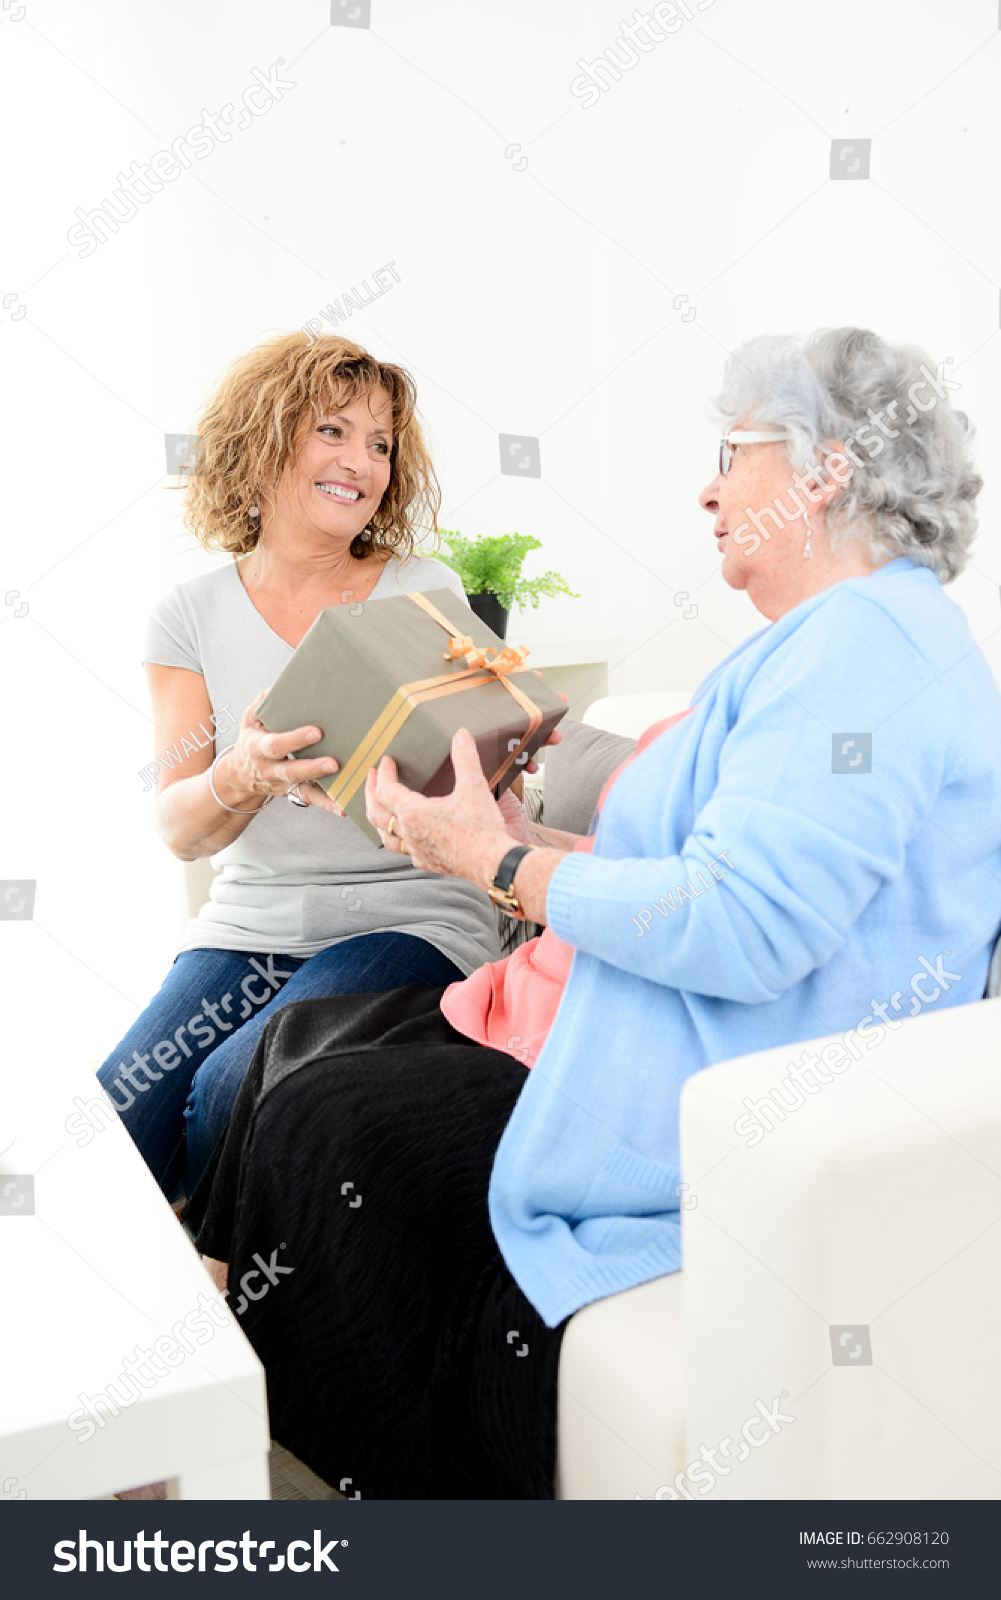 Mature Woman Offering Present Gift To Elderly Senior Lady For Mothers Day Or Birthday Anniversary